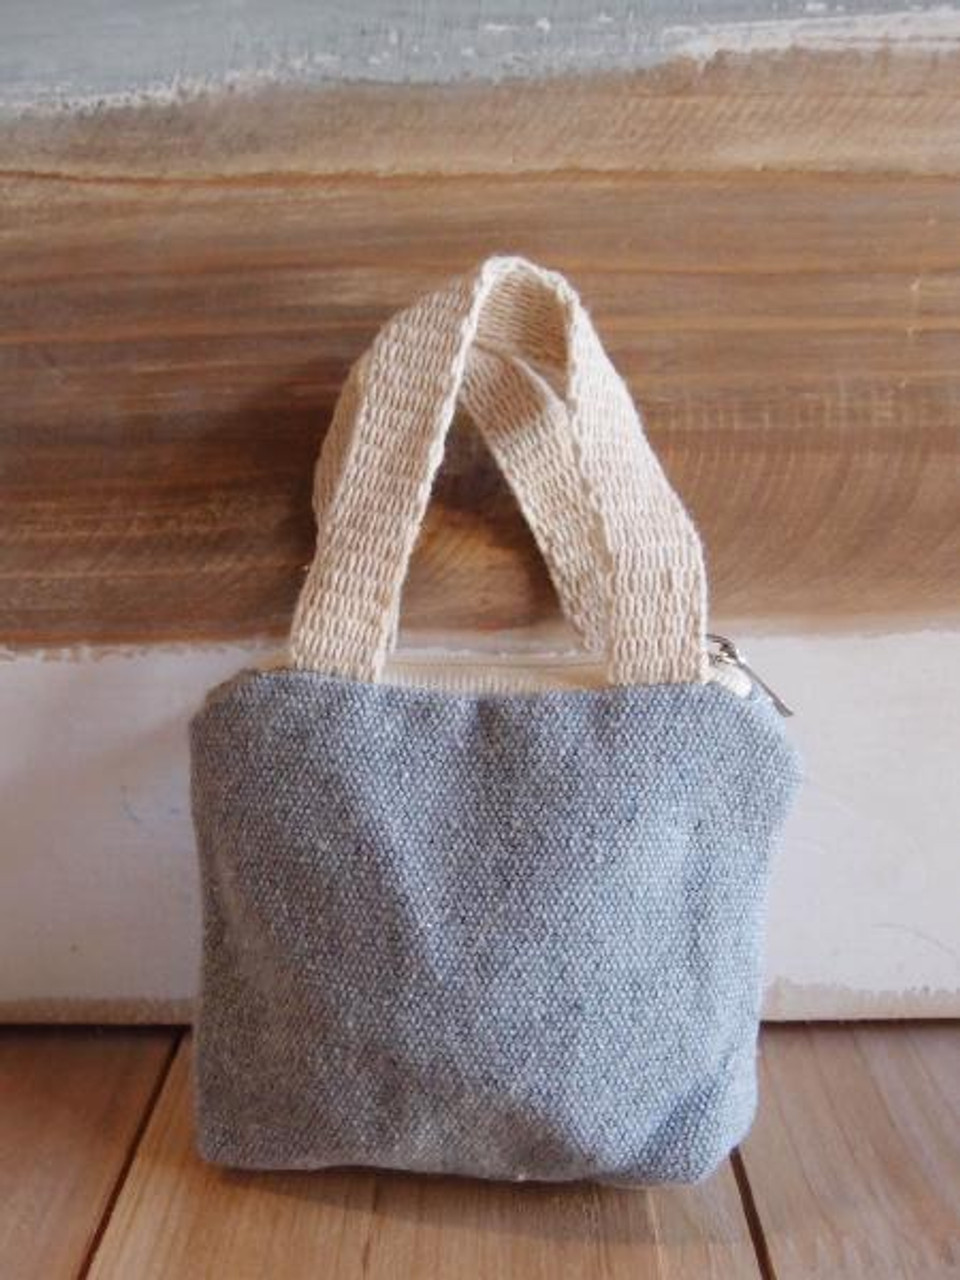 Gray Mini Tote Bag Zippered with Natural Handles B690-70, Wholesale Tote Bags | Packaging Decor